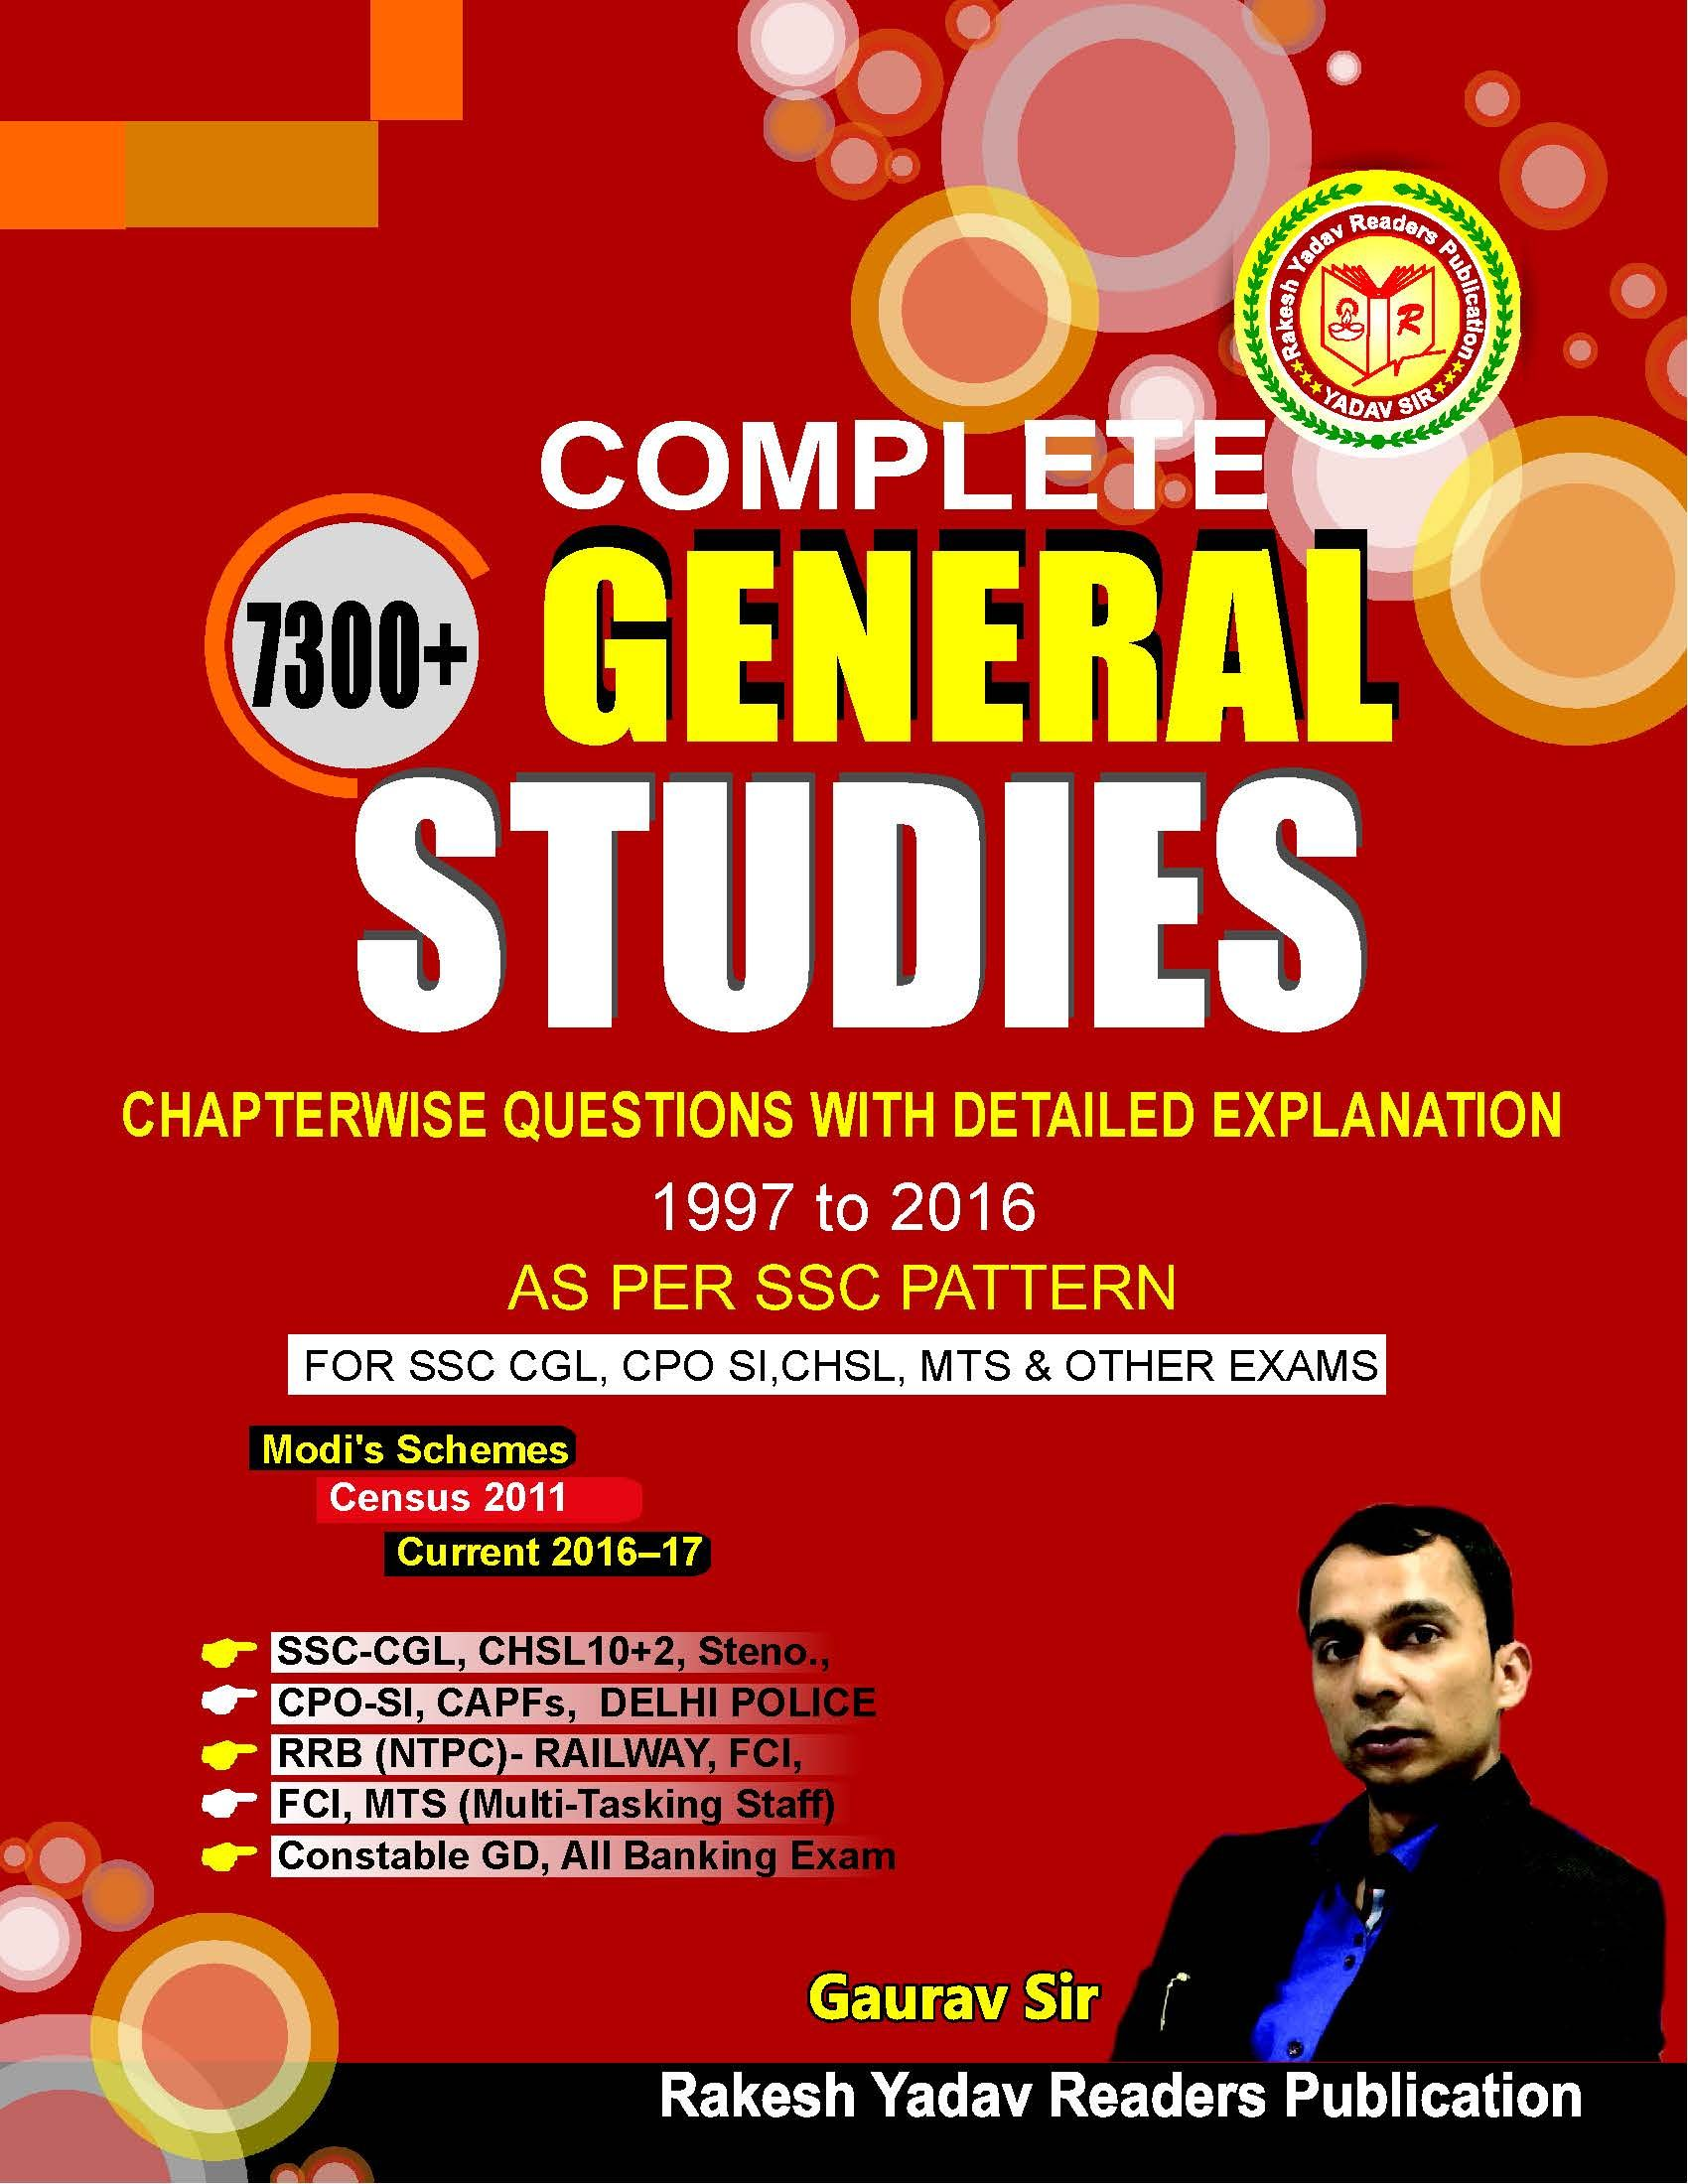 Ssc general studies 7300 by rakesh yadav sir pdf engineering ssc general studies 7300 by rakesh yadav sir pdf fandeluxe Images